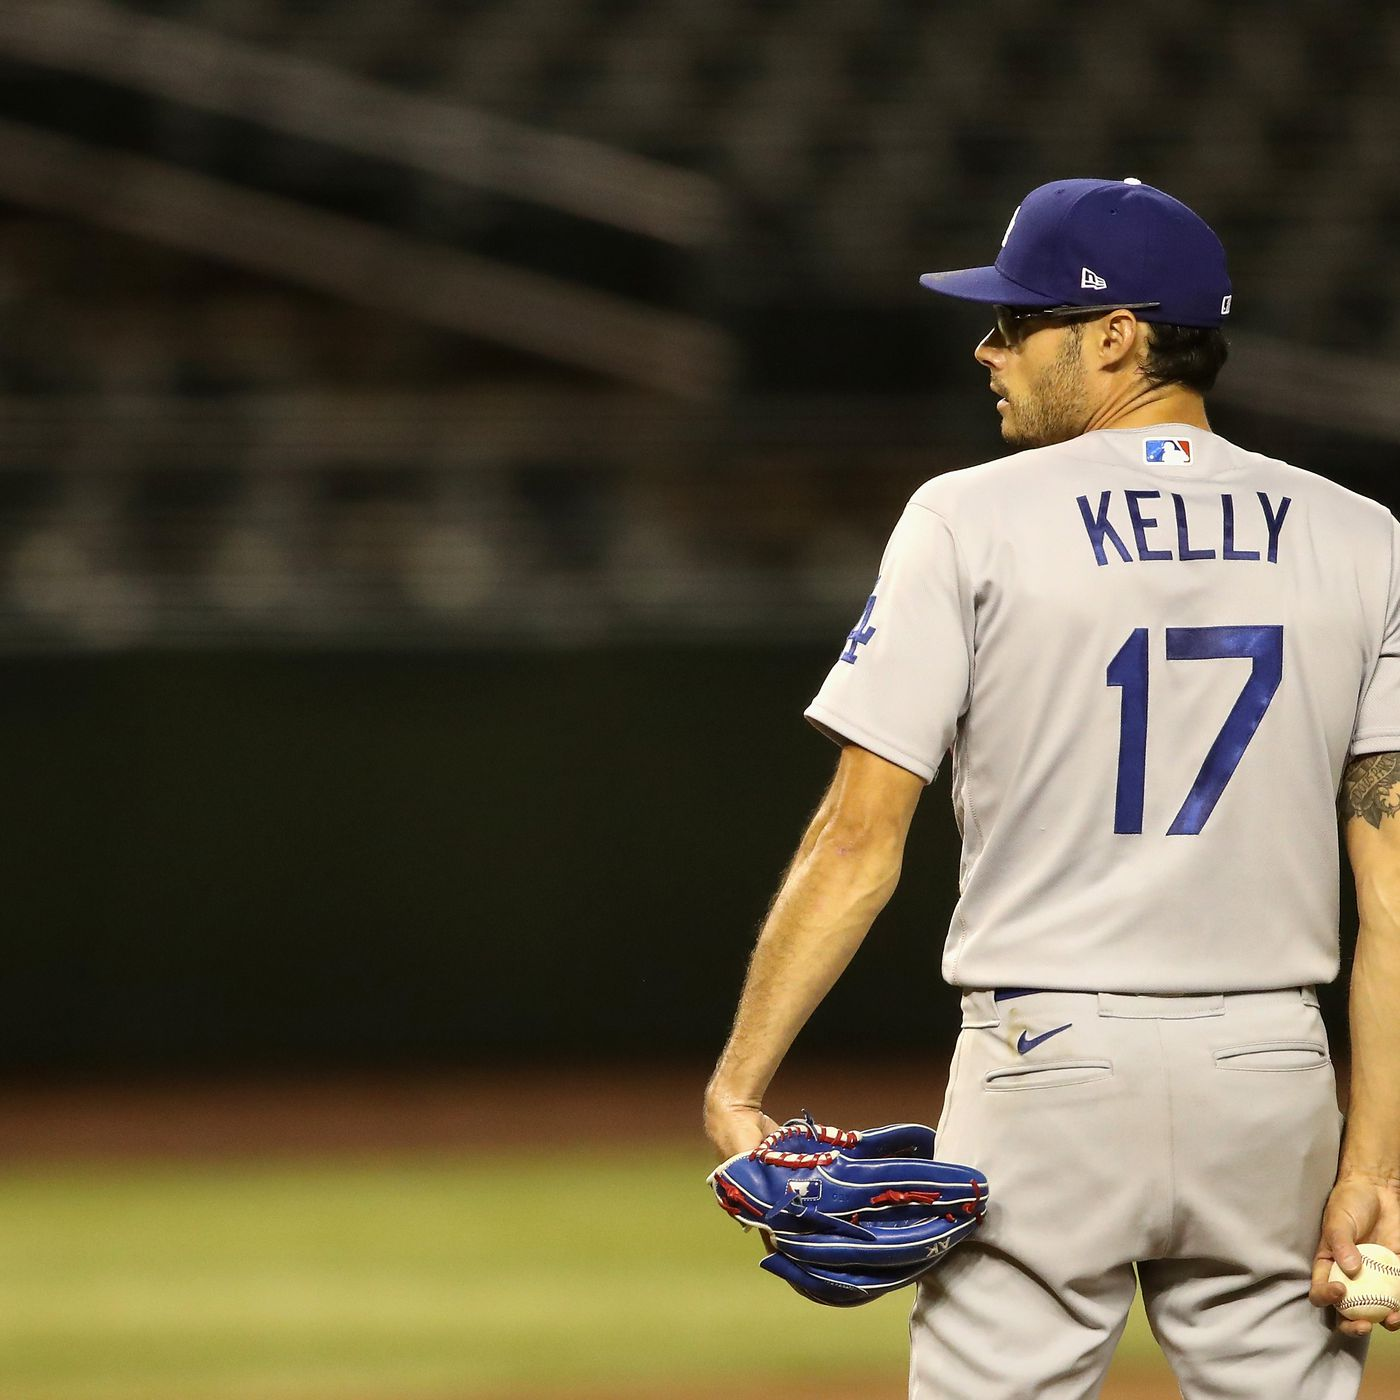 Dodgers News Mlbpa Says Joe Kelly Suspension Was Unfair True Blue La Check out our joe kelly selection for the very best in unique or custom, handmade pieces from our shops. dodgers news mlbpa says joe kelly